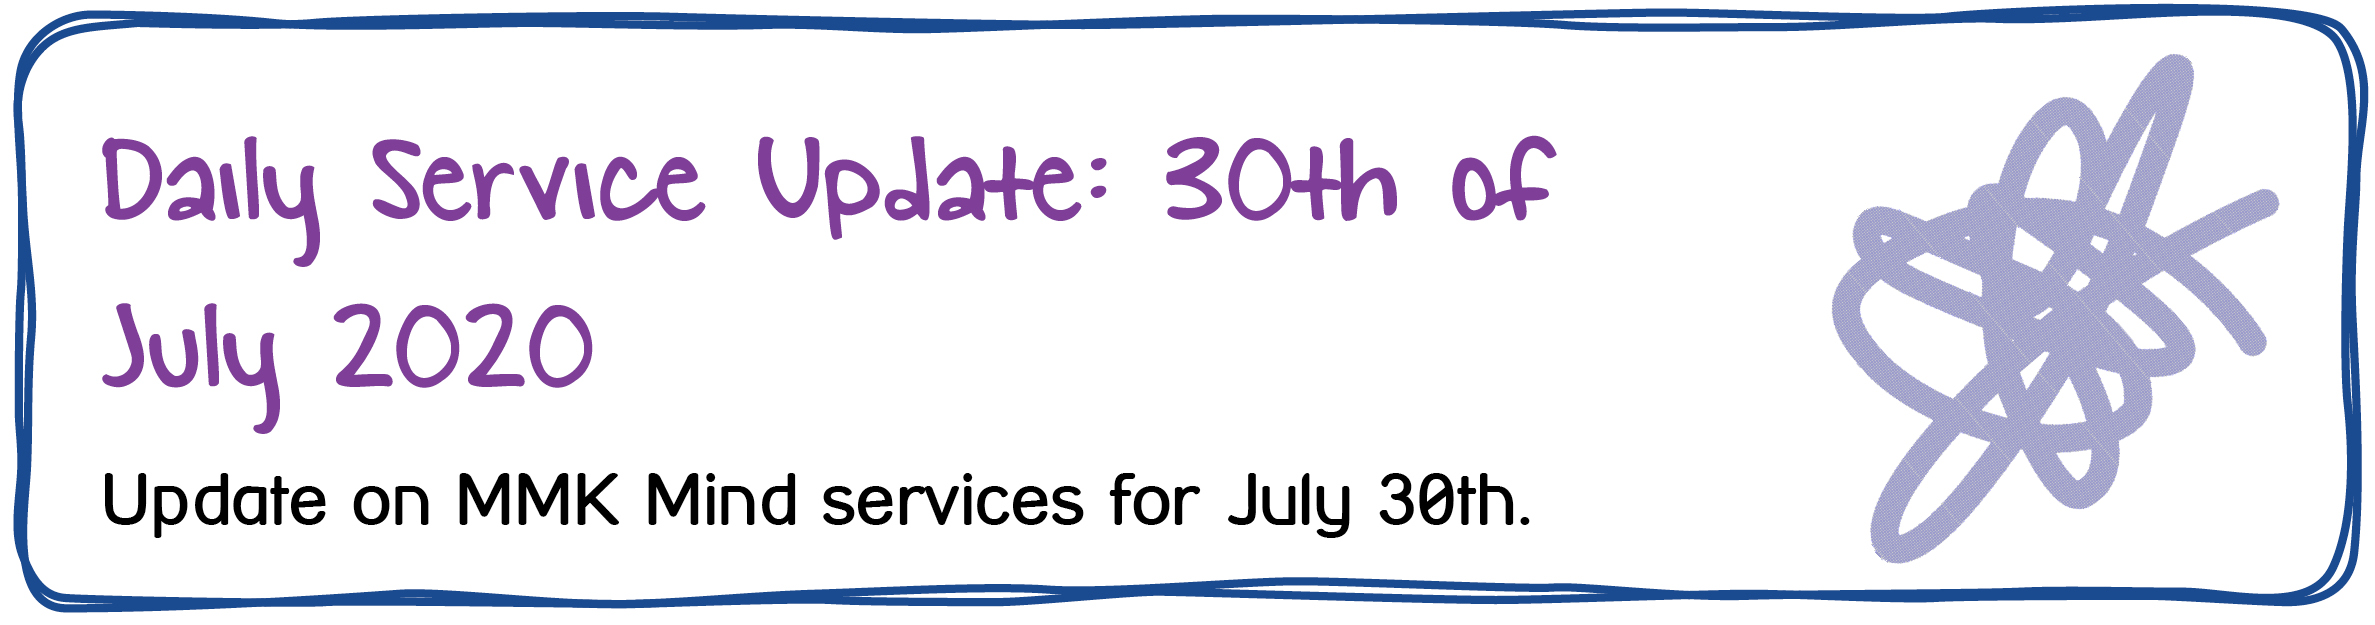 Daily Service Update: 30th of July 2020. Update on MMK Mind services for July 30th.